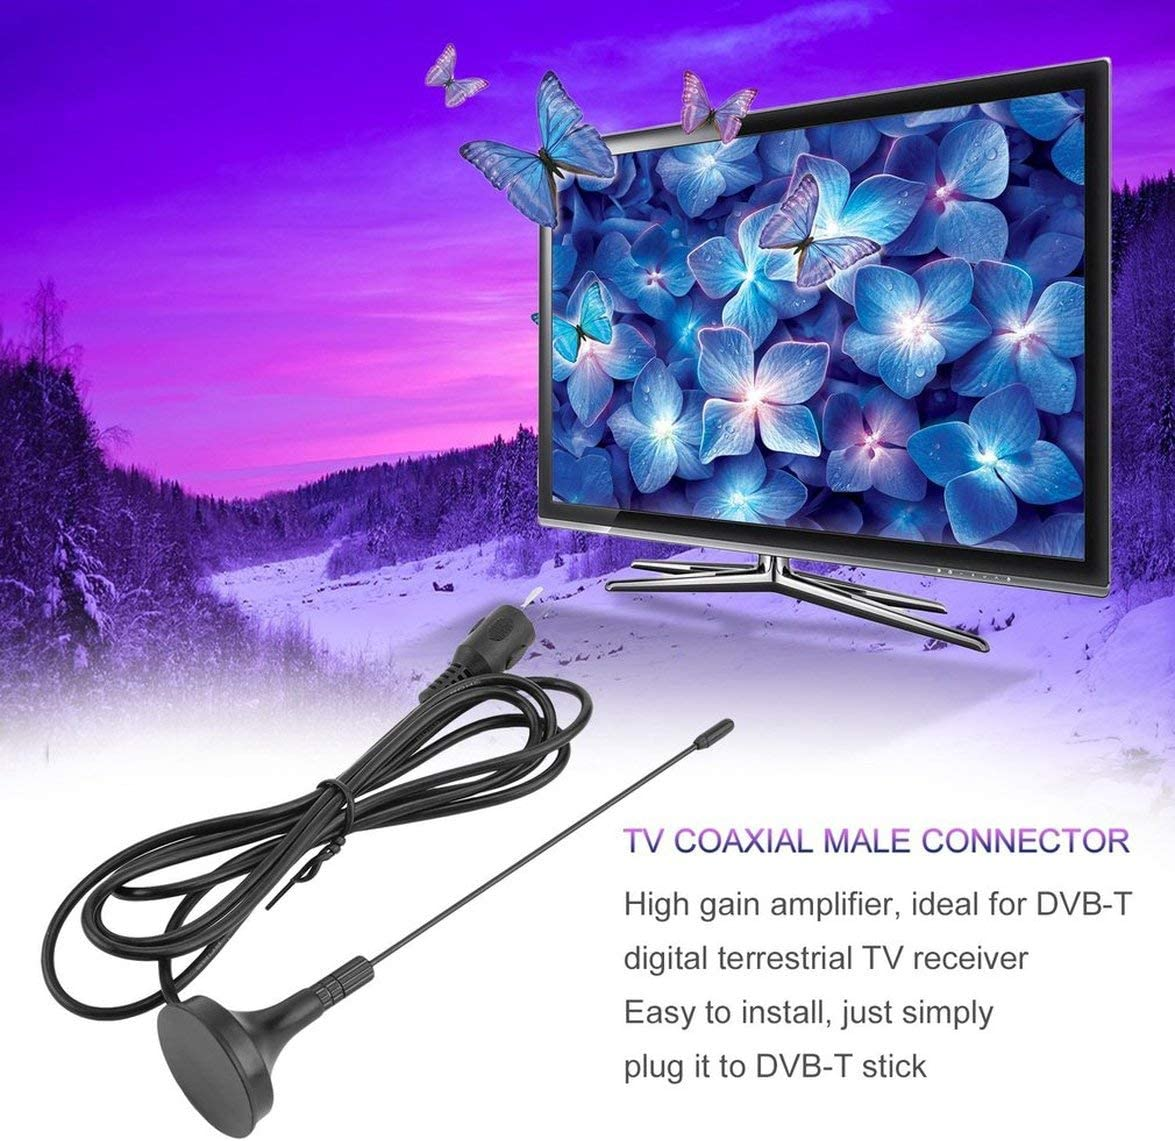 Portable 5dBi Digital DVB-T TV Free-View HDTV Aerial High Gain Amplifiers TV Indoor HDTV Strong Signal Boosters